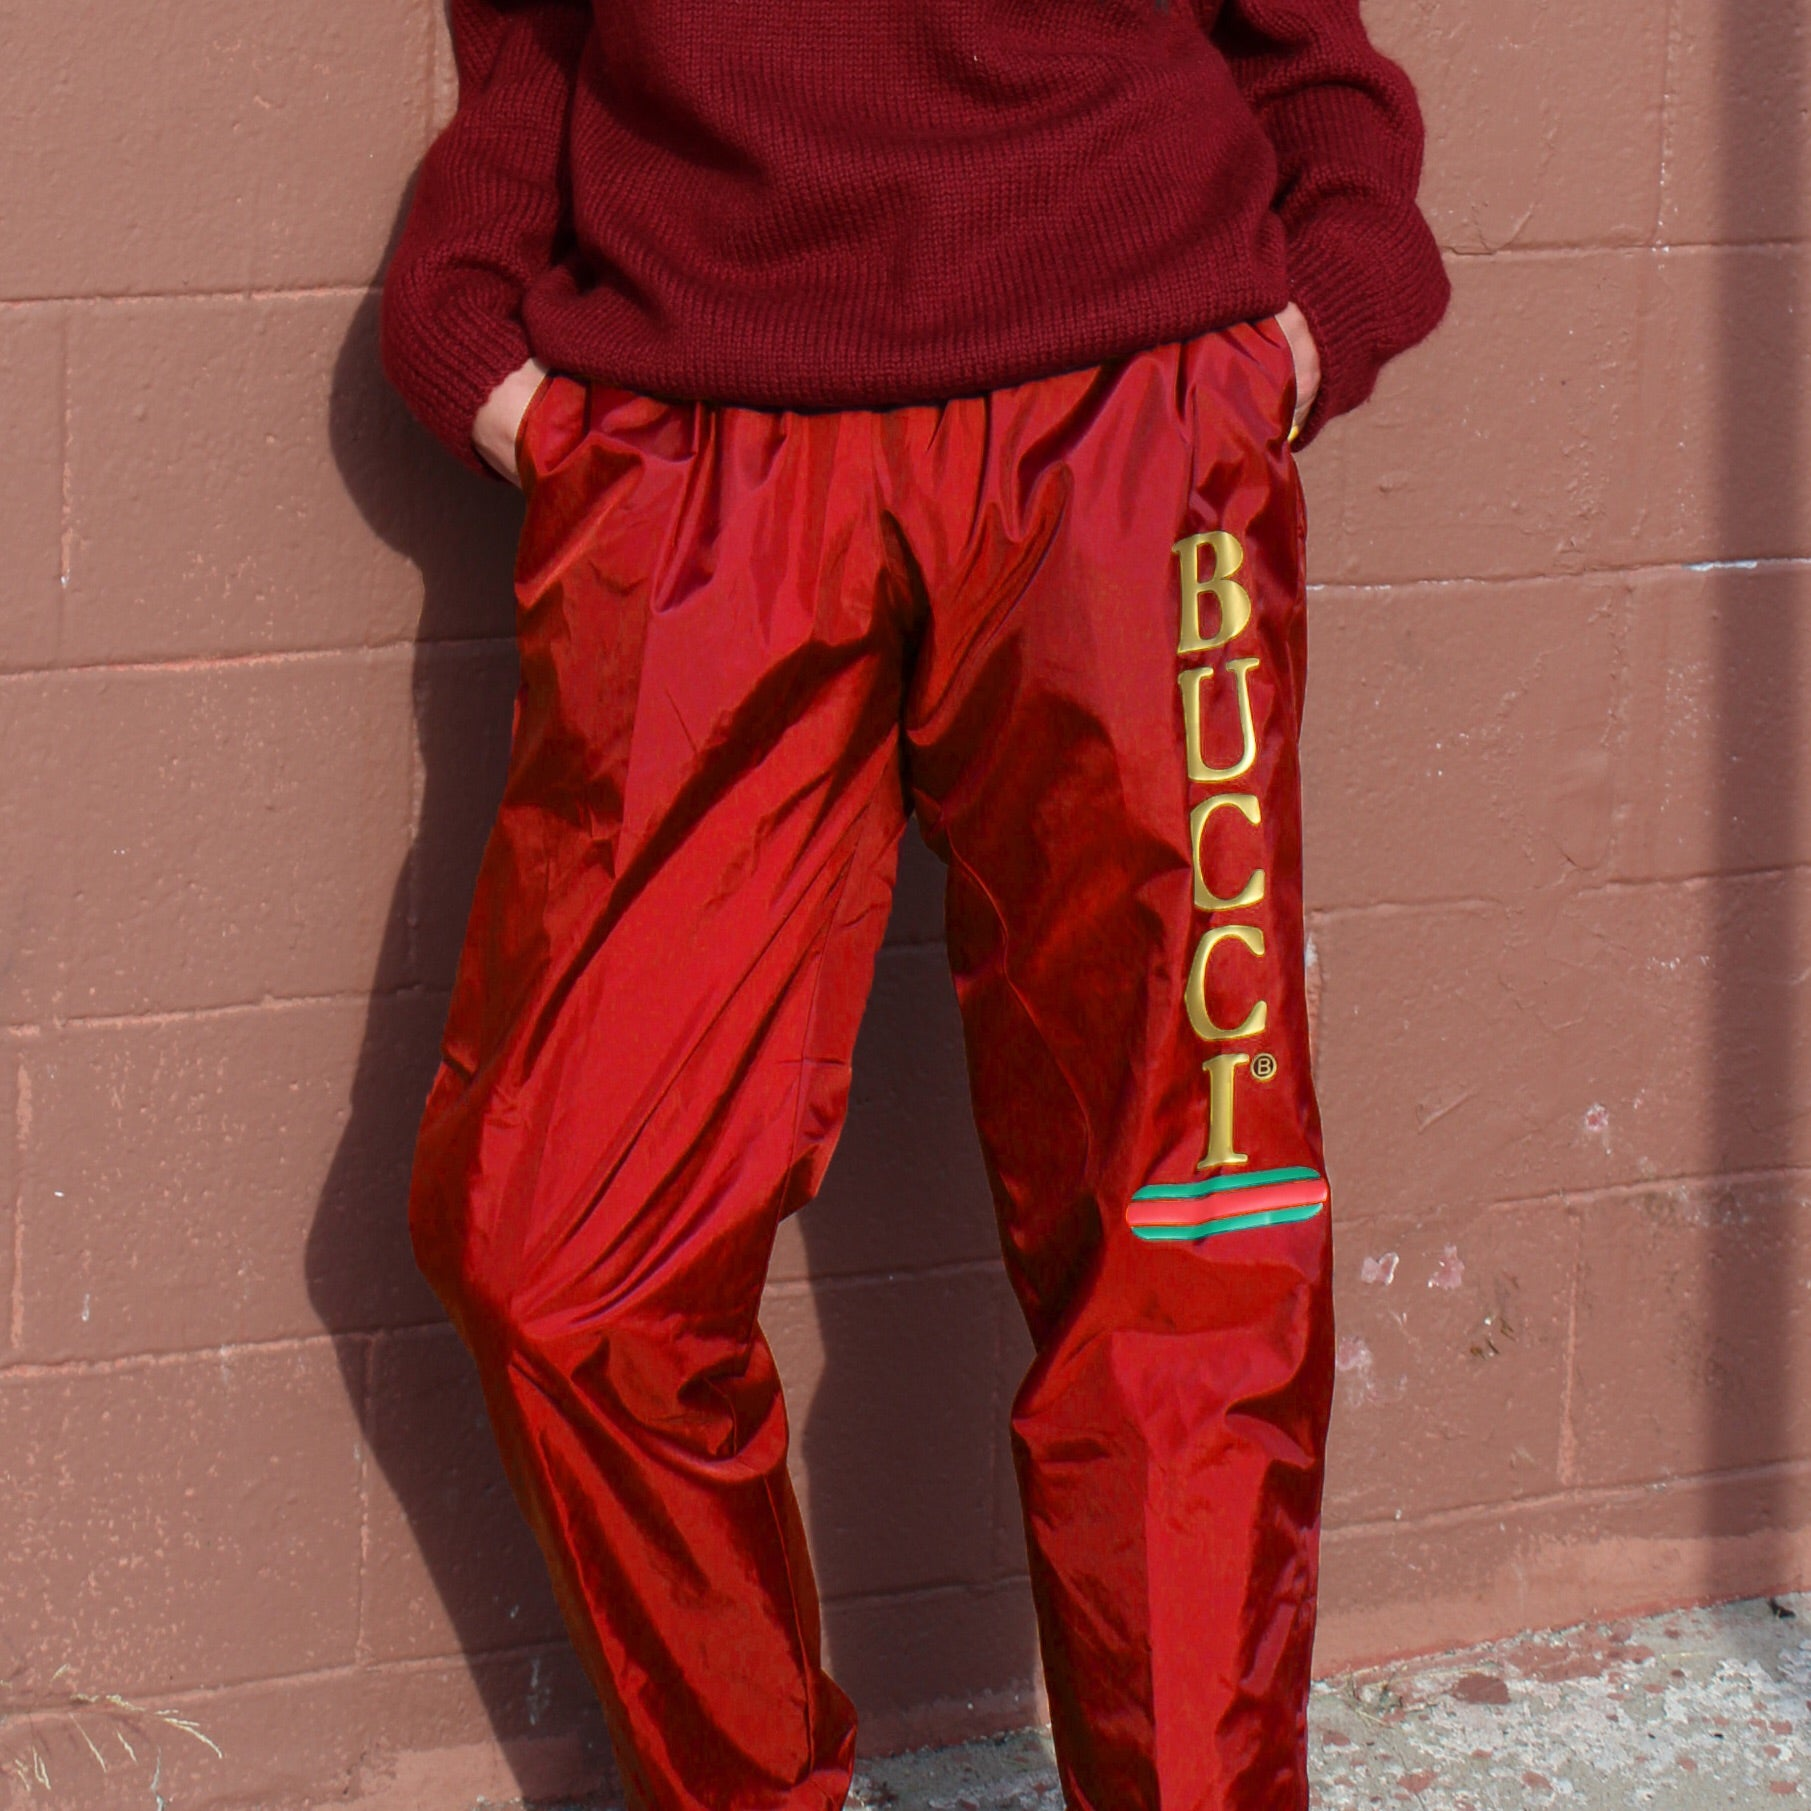 RED BUCCI NYLON TRACK PANTS